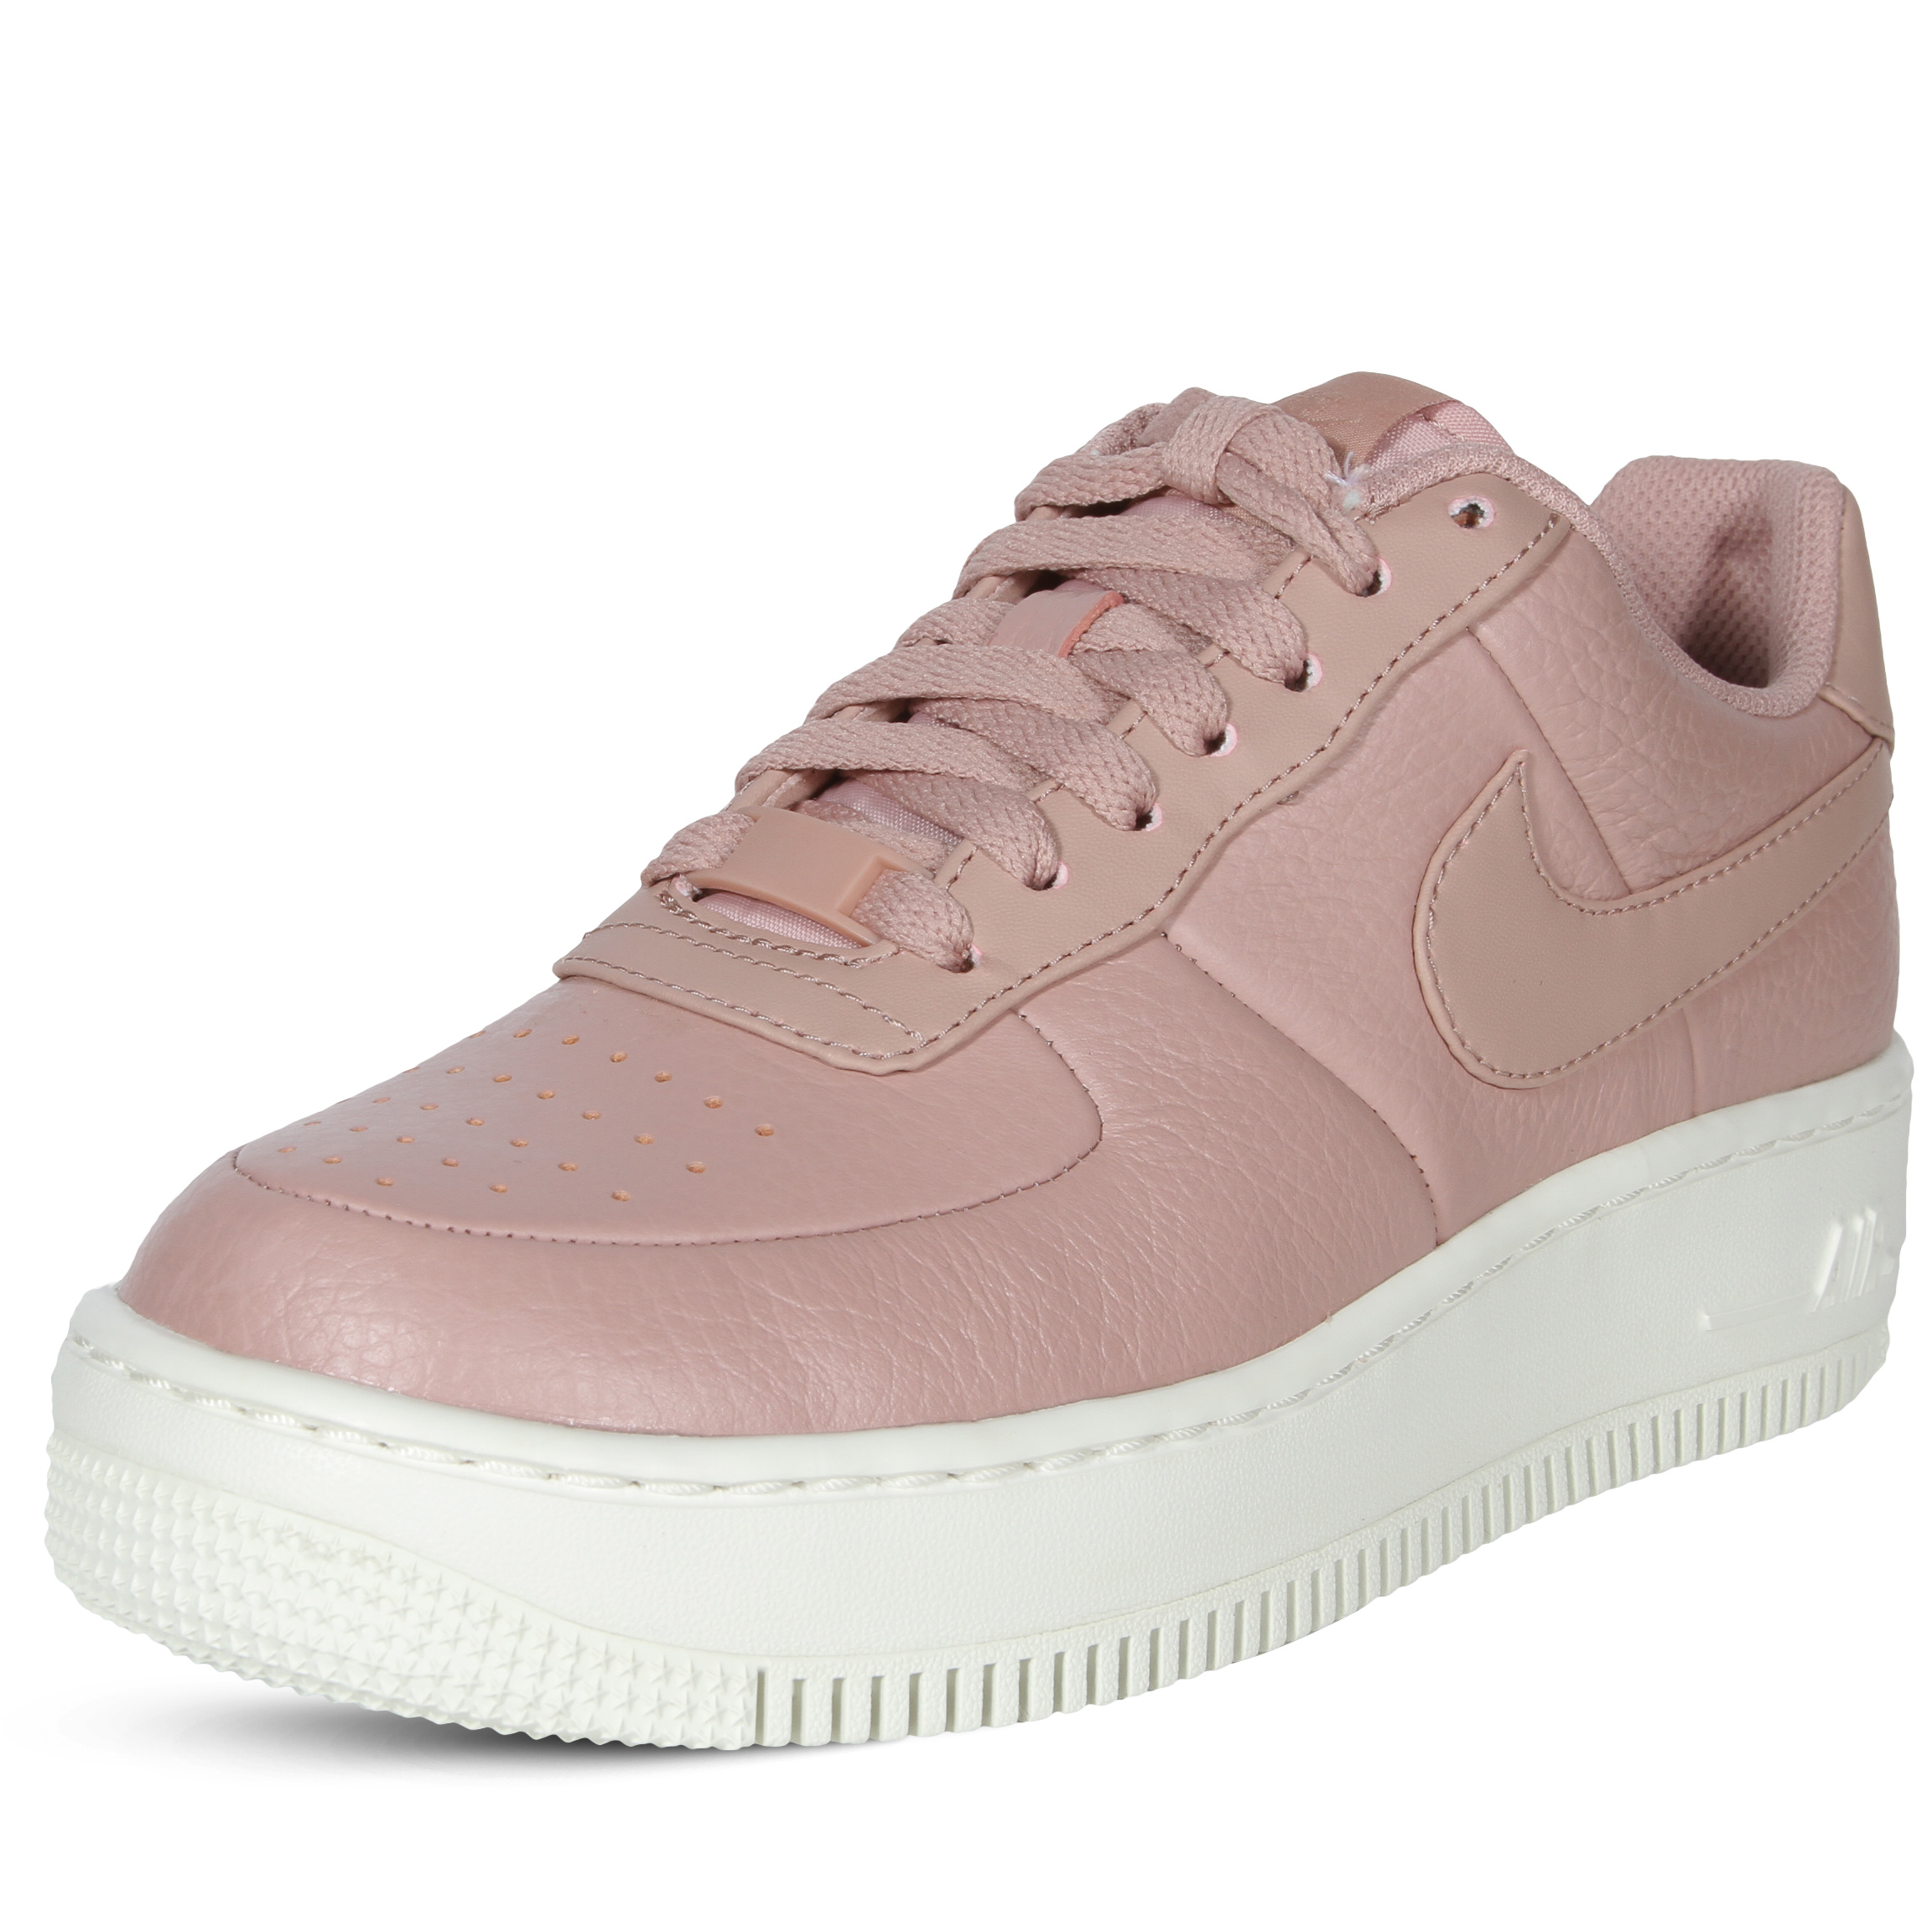 huge discount c3ab9 c8e15 Women s Nike Air Force 1 Upstep Basketball Shoes 917588-601